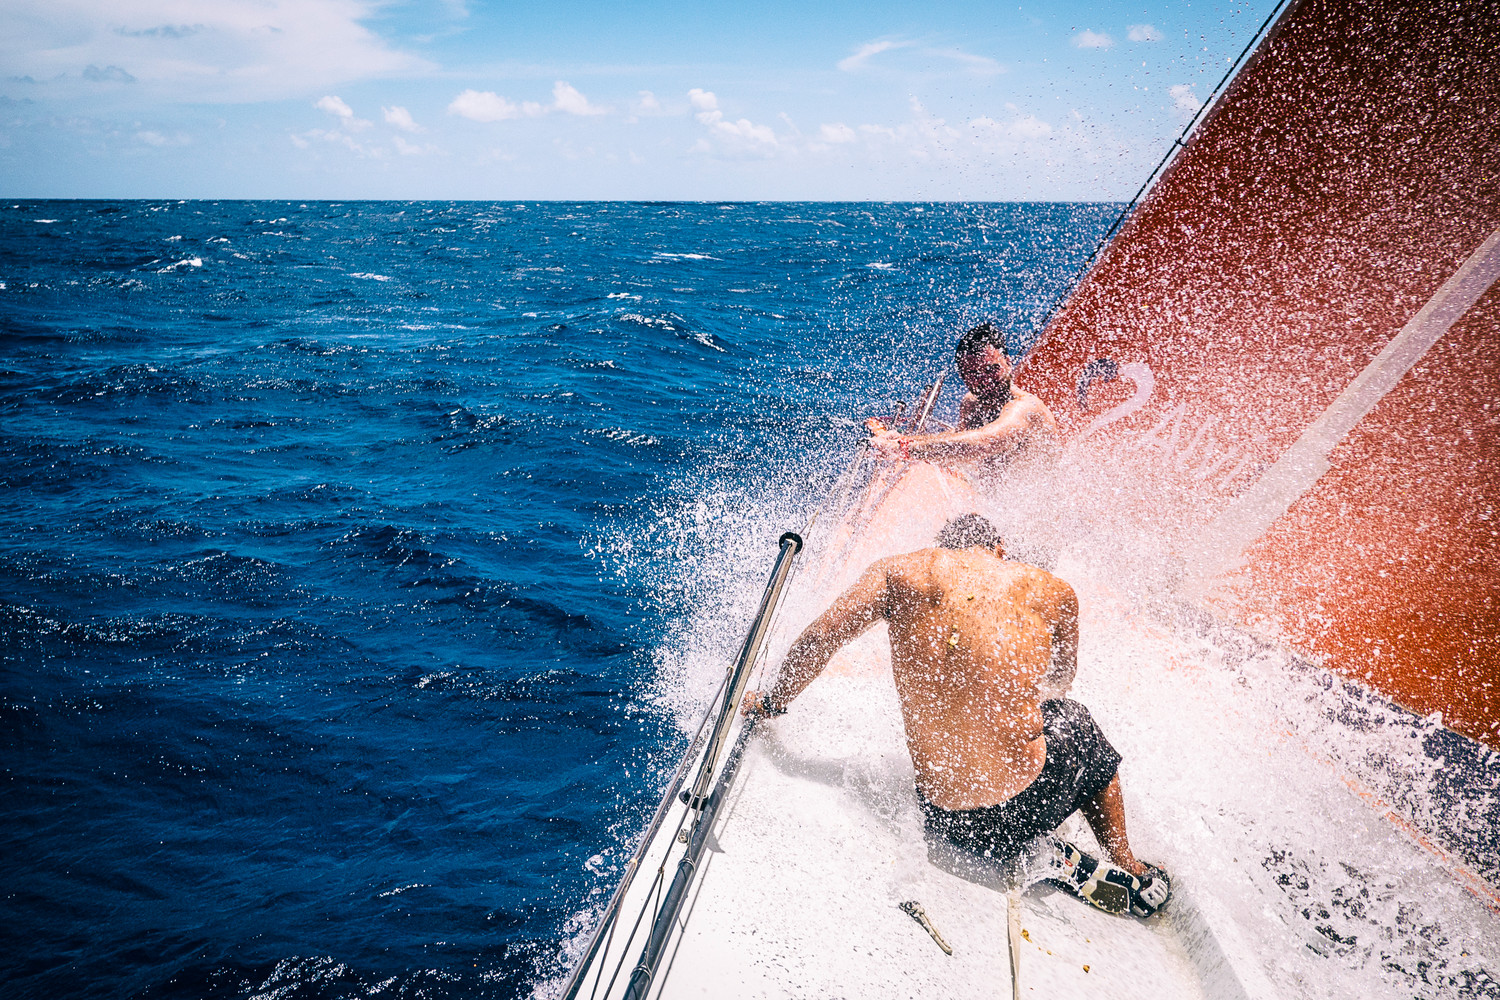 A full day of steady wind propels Team Alvimedica over the Equator at speed.